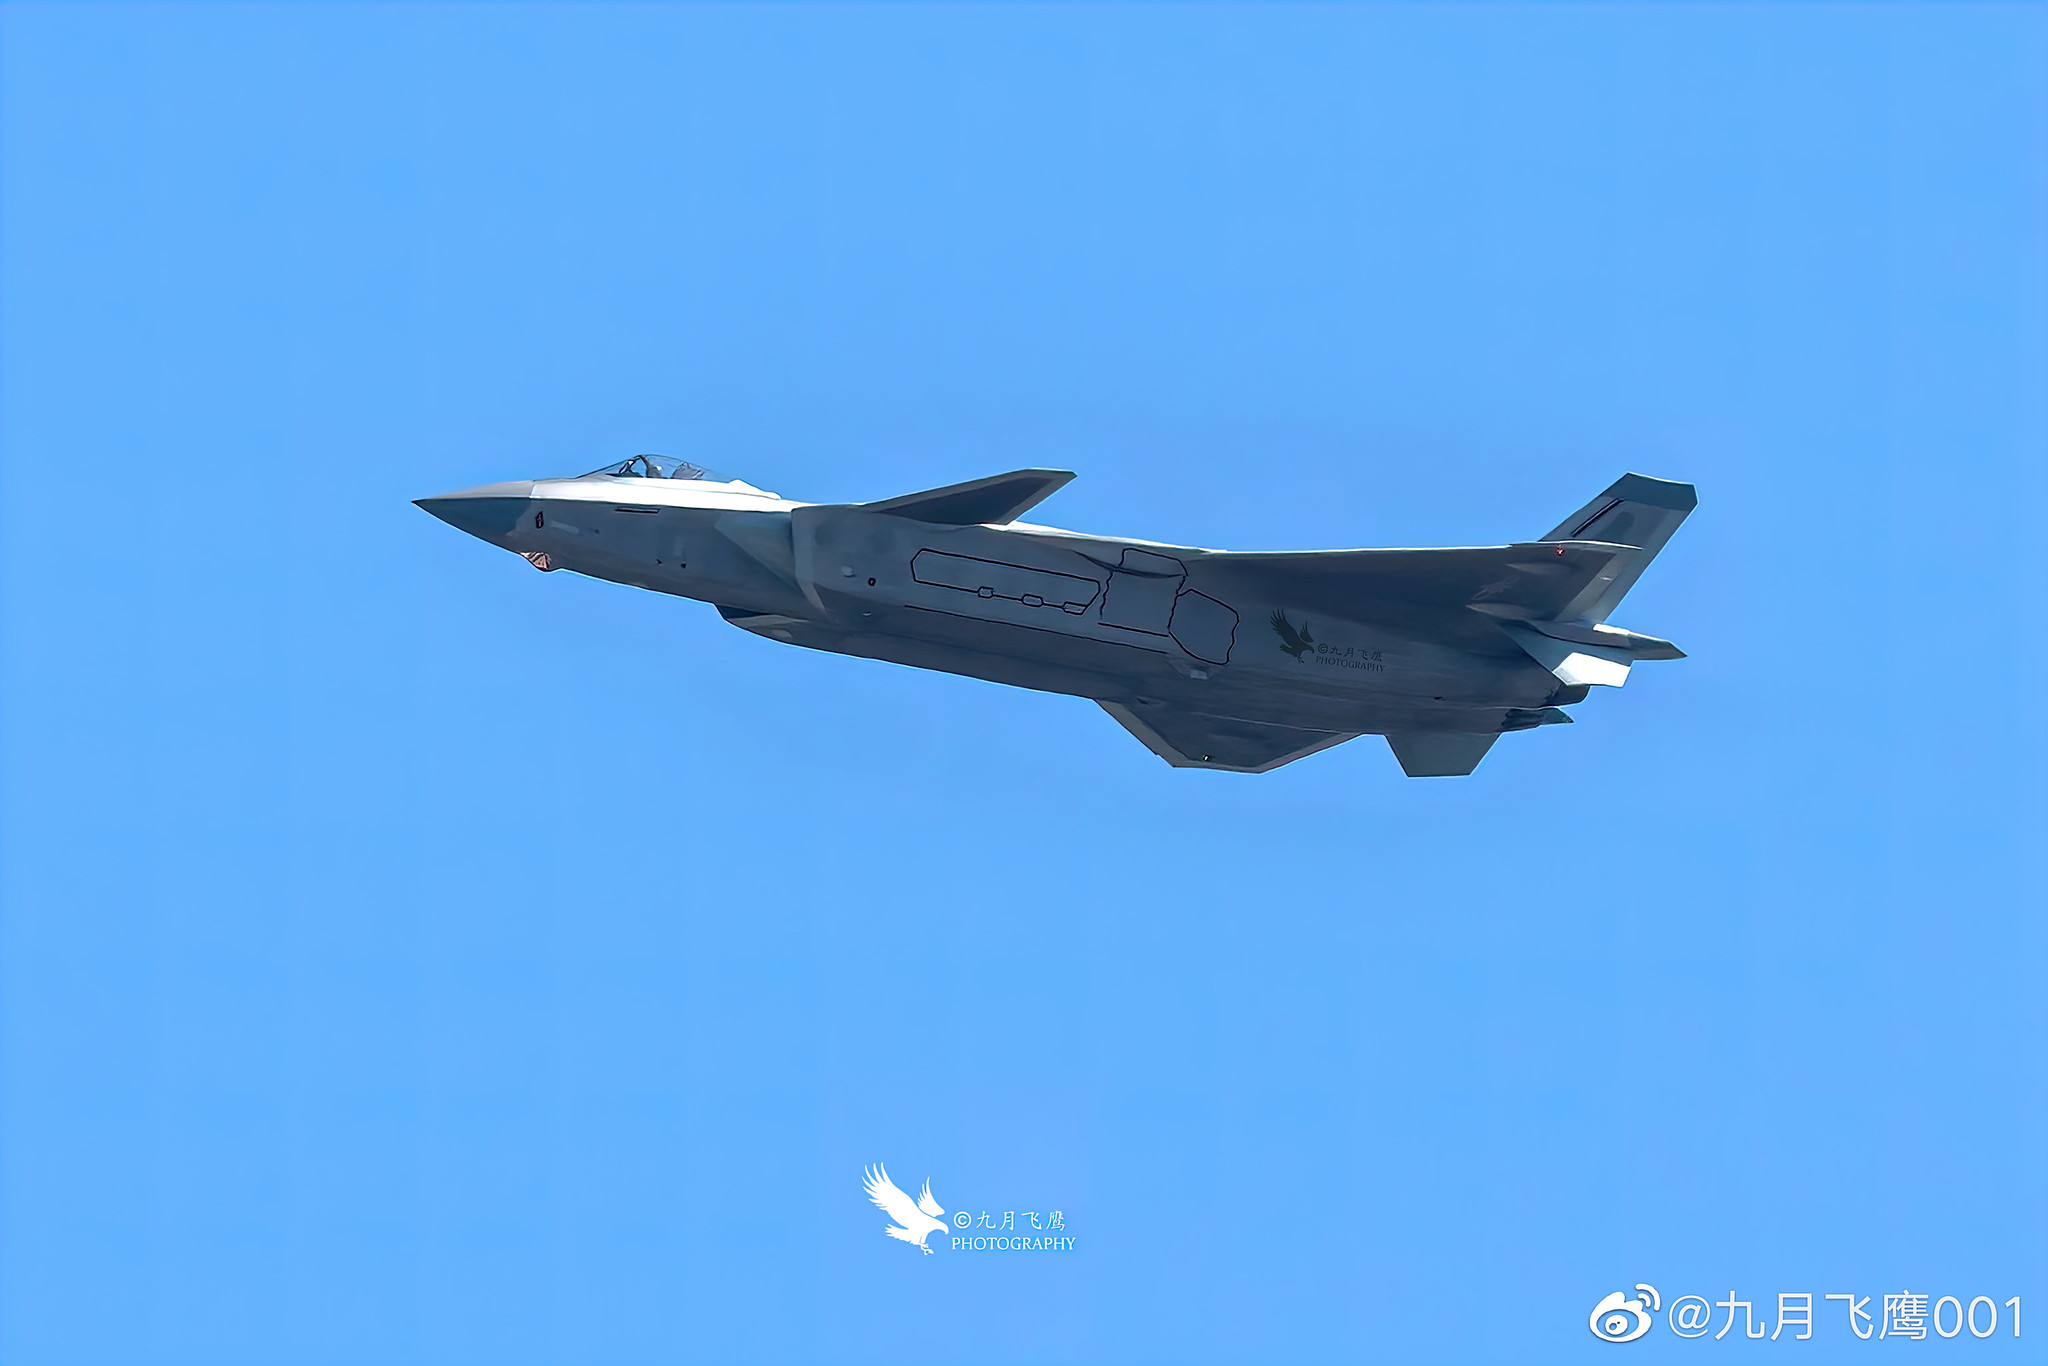 PLA Air Force General News Thread: - Page 12 51259934860_d6ebe45a4a_k